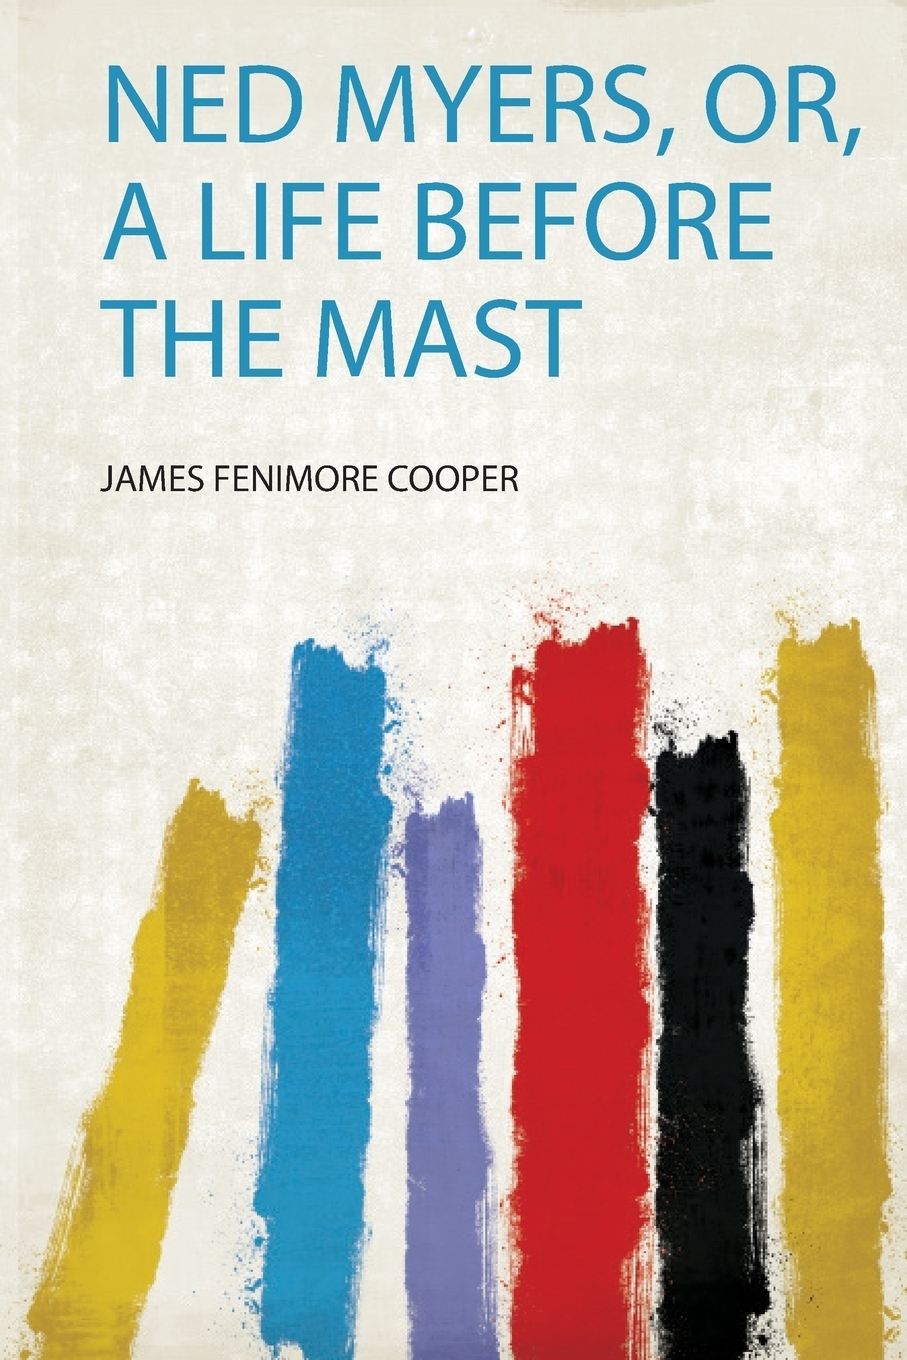 Ned Myers, Or, a Life Before the Mast